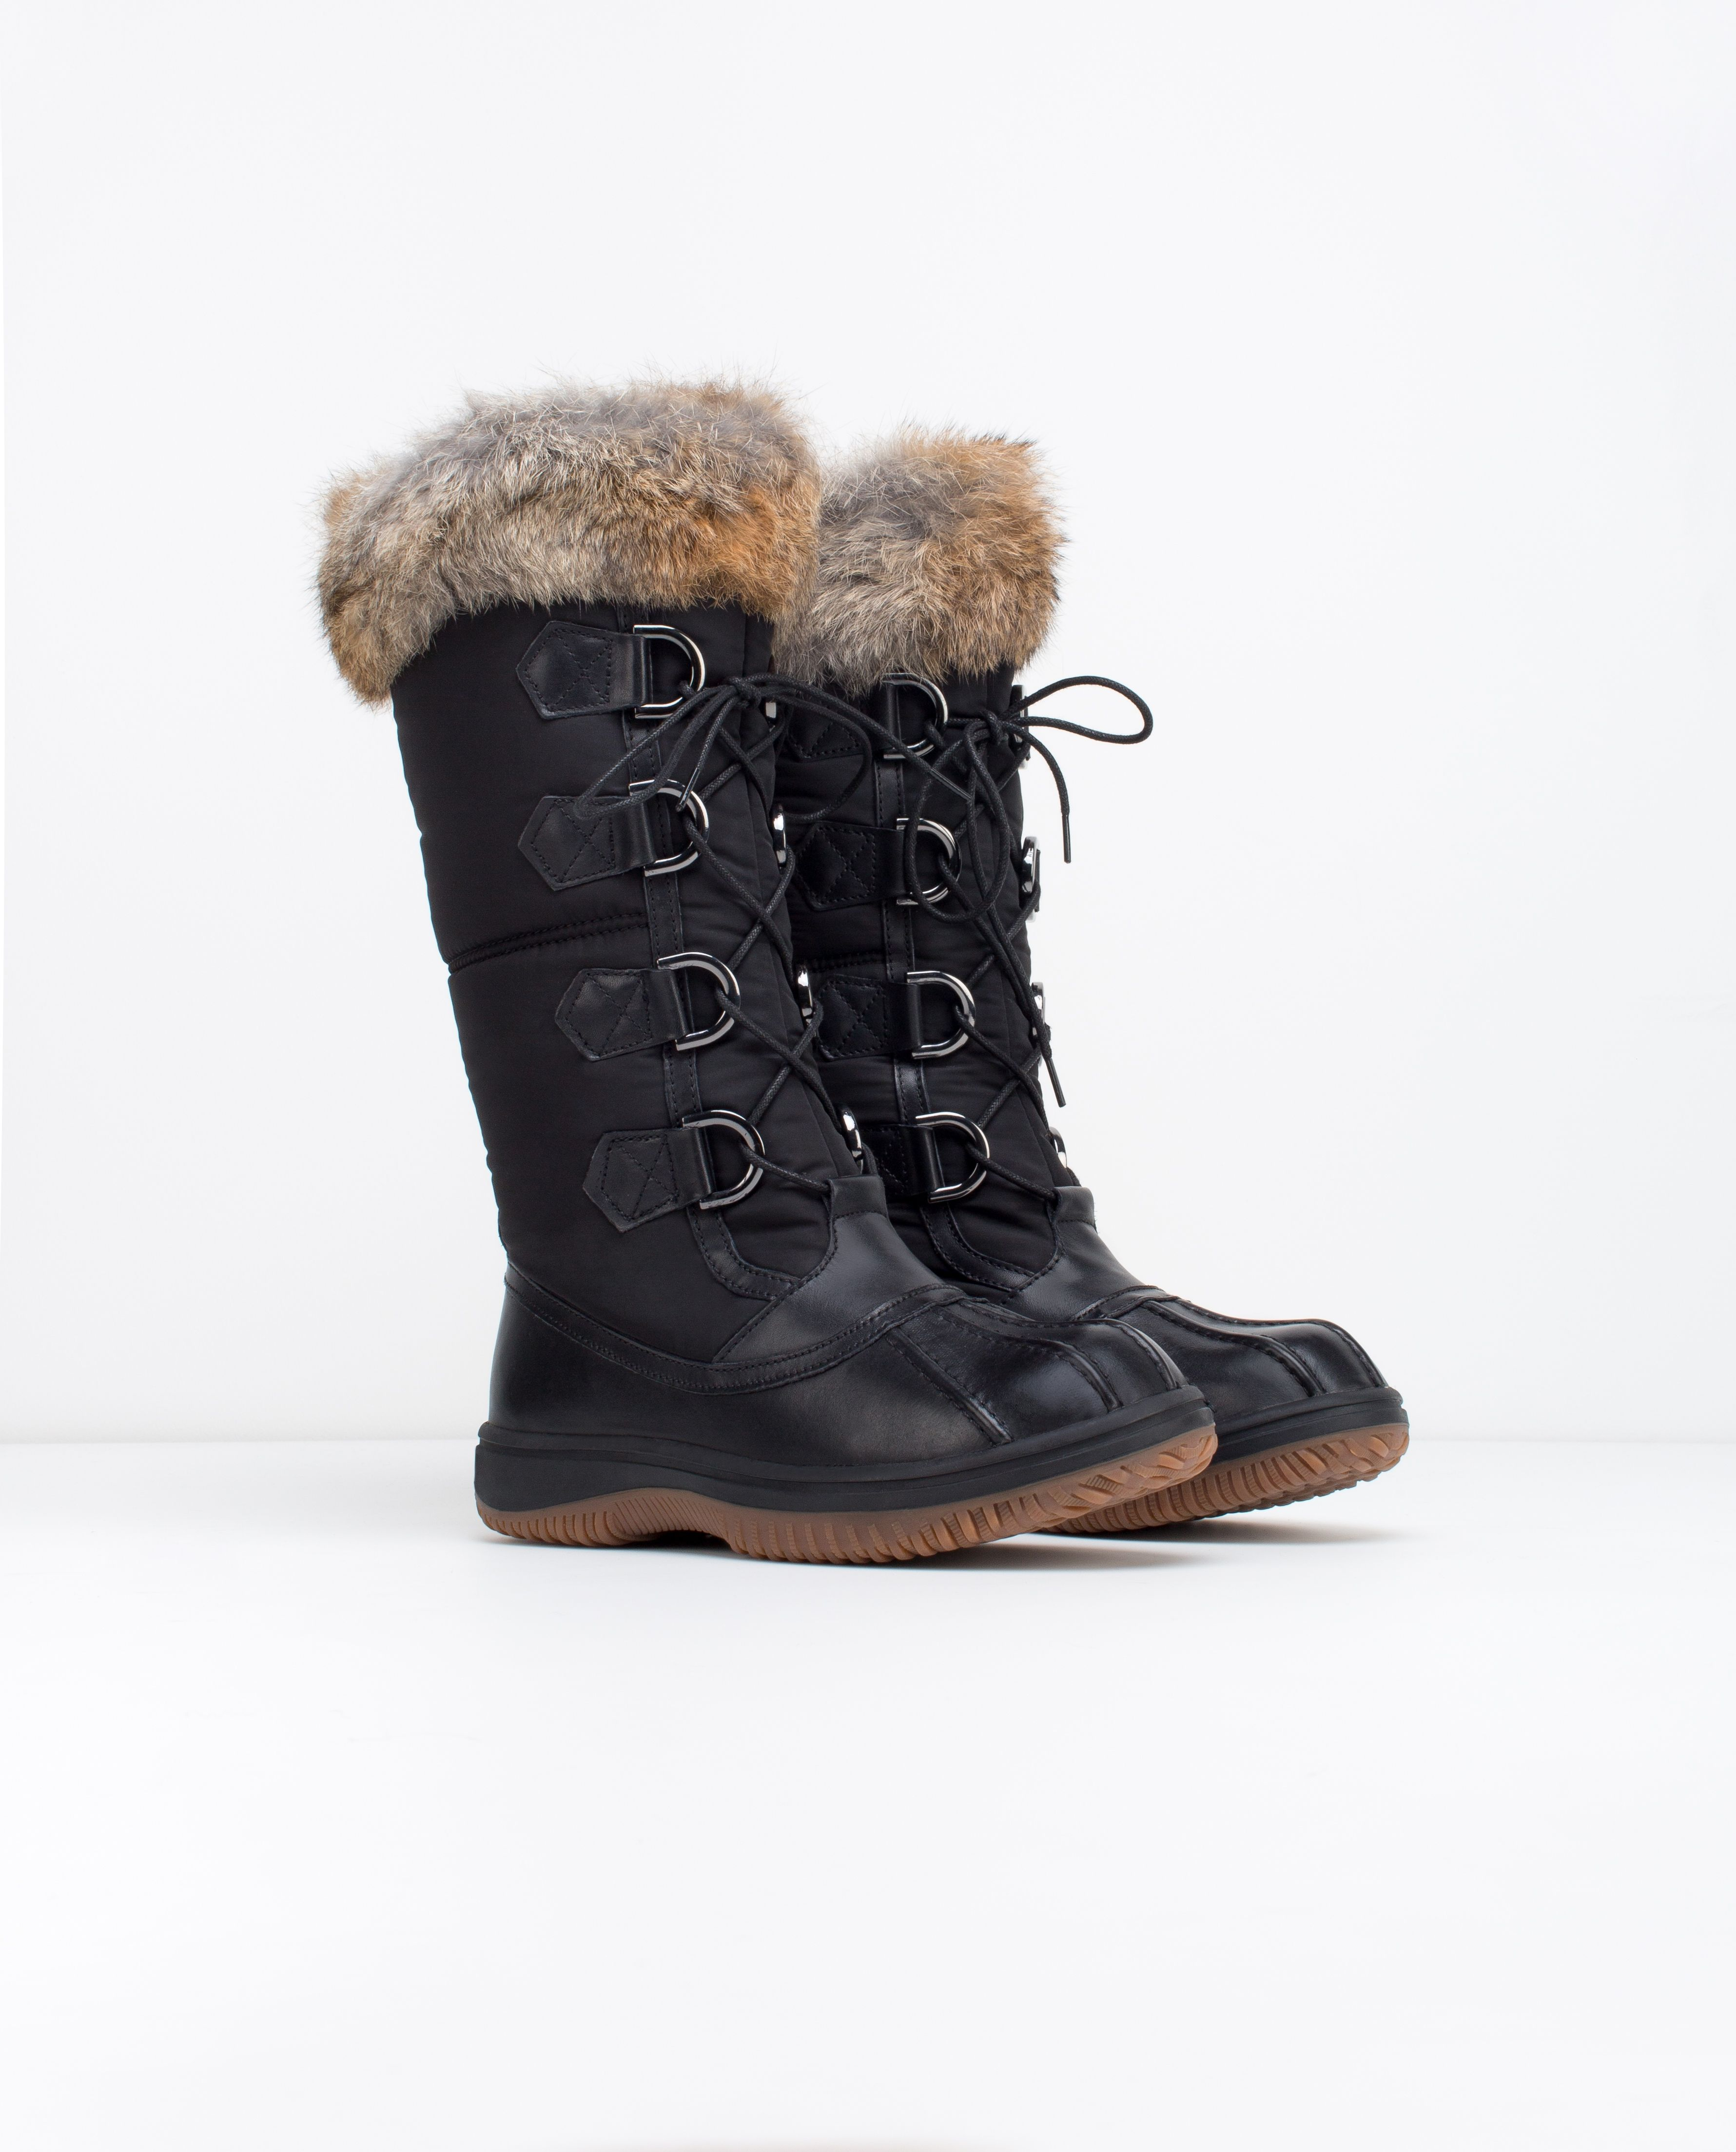 Winter Boots| RUDSAK (BLACKNATURAL , GENUINE LEATHERRABBIT